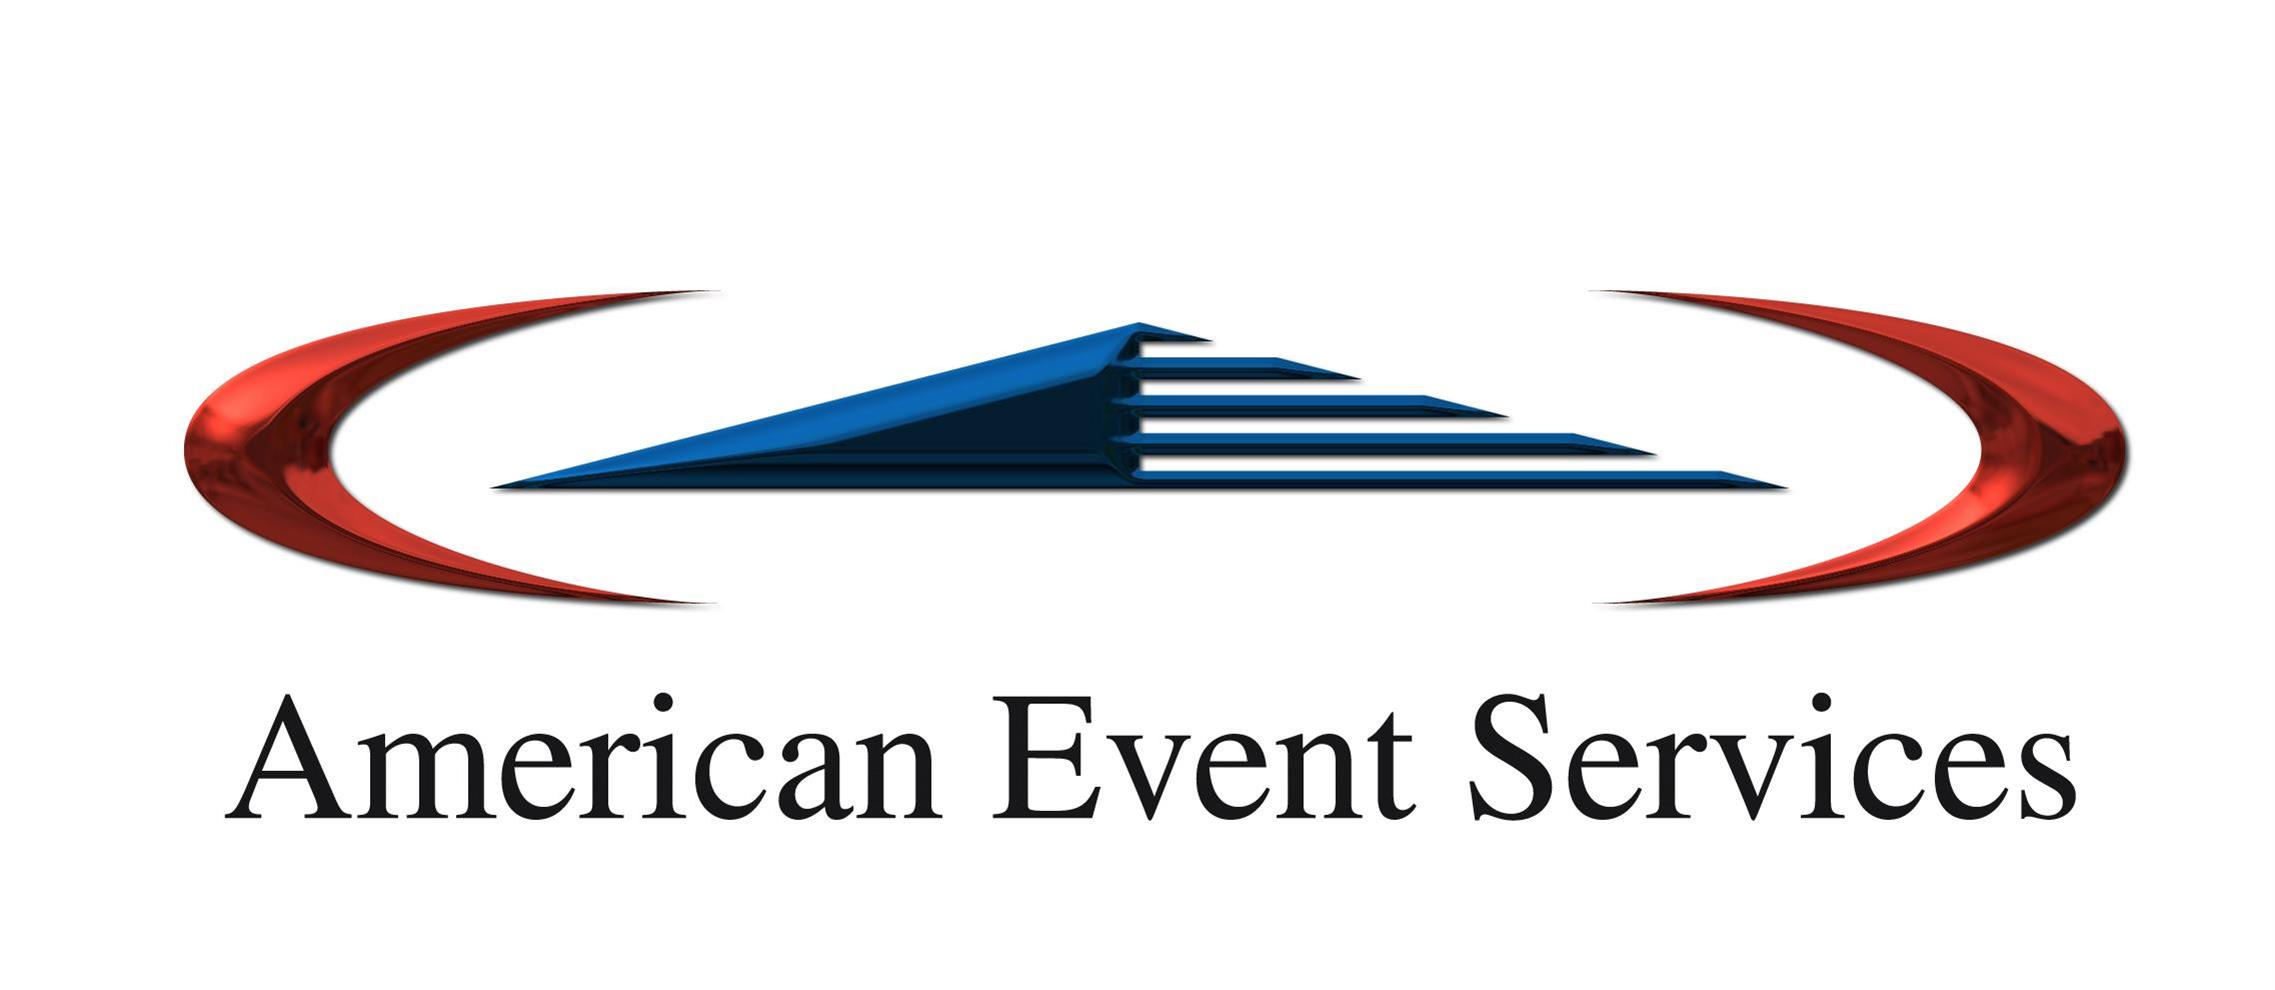 American Event Services logo